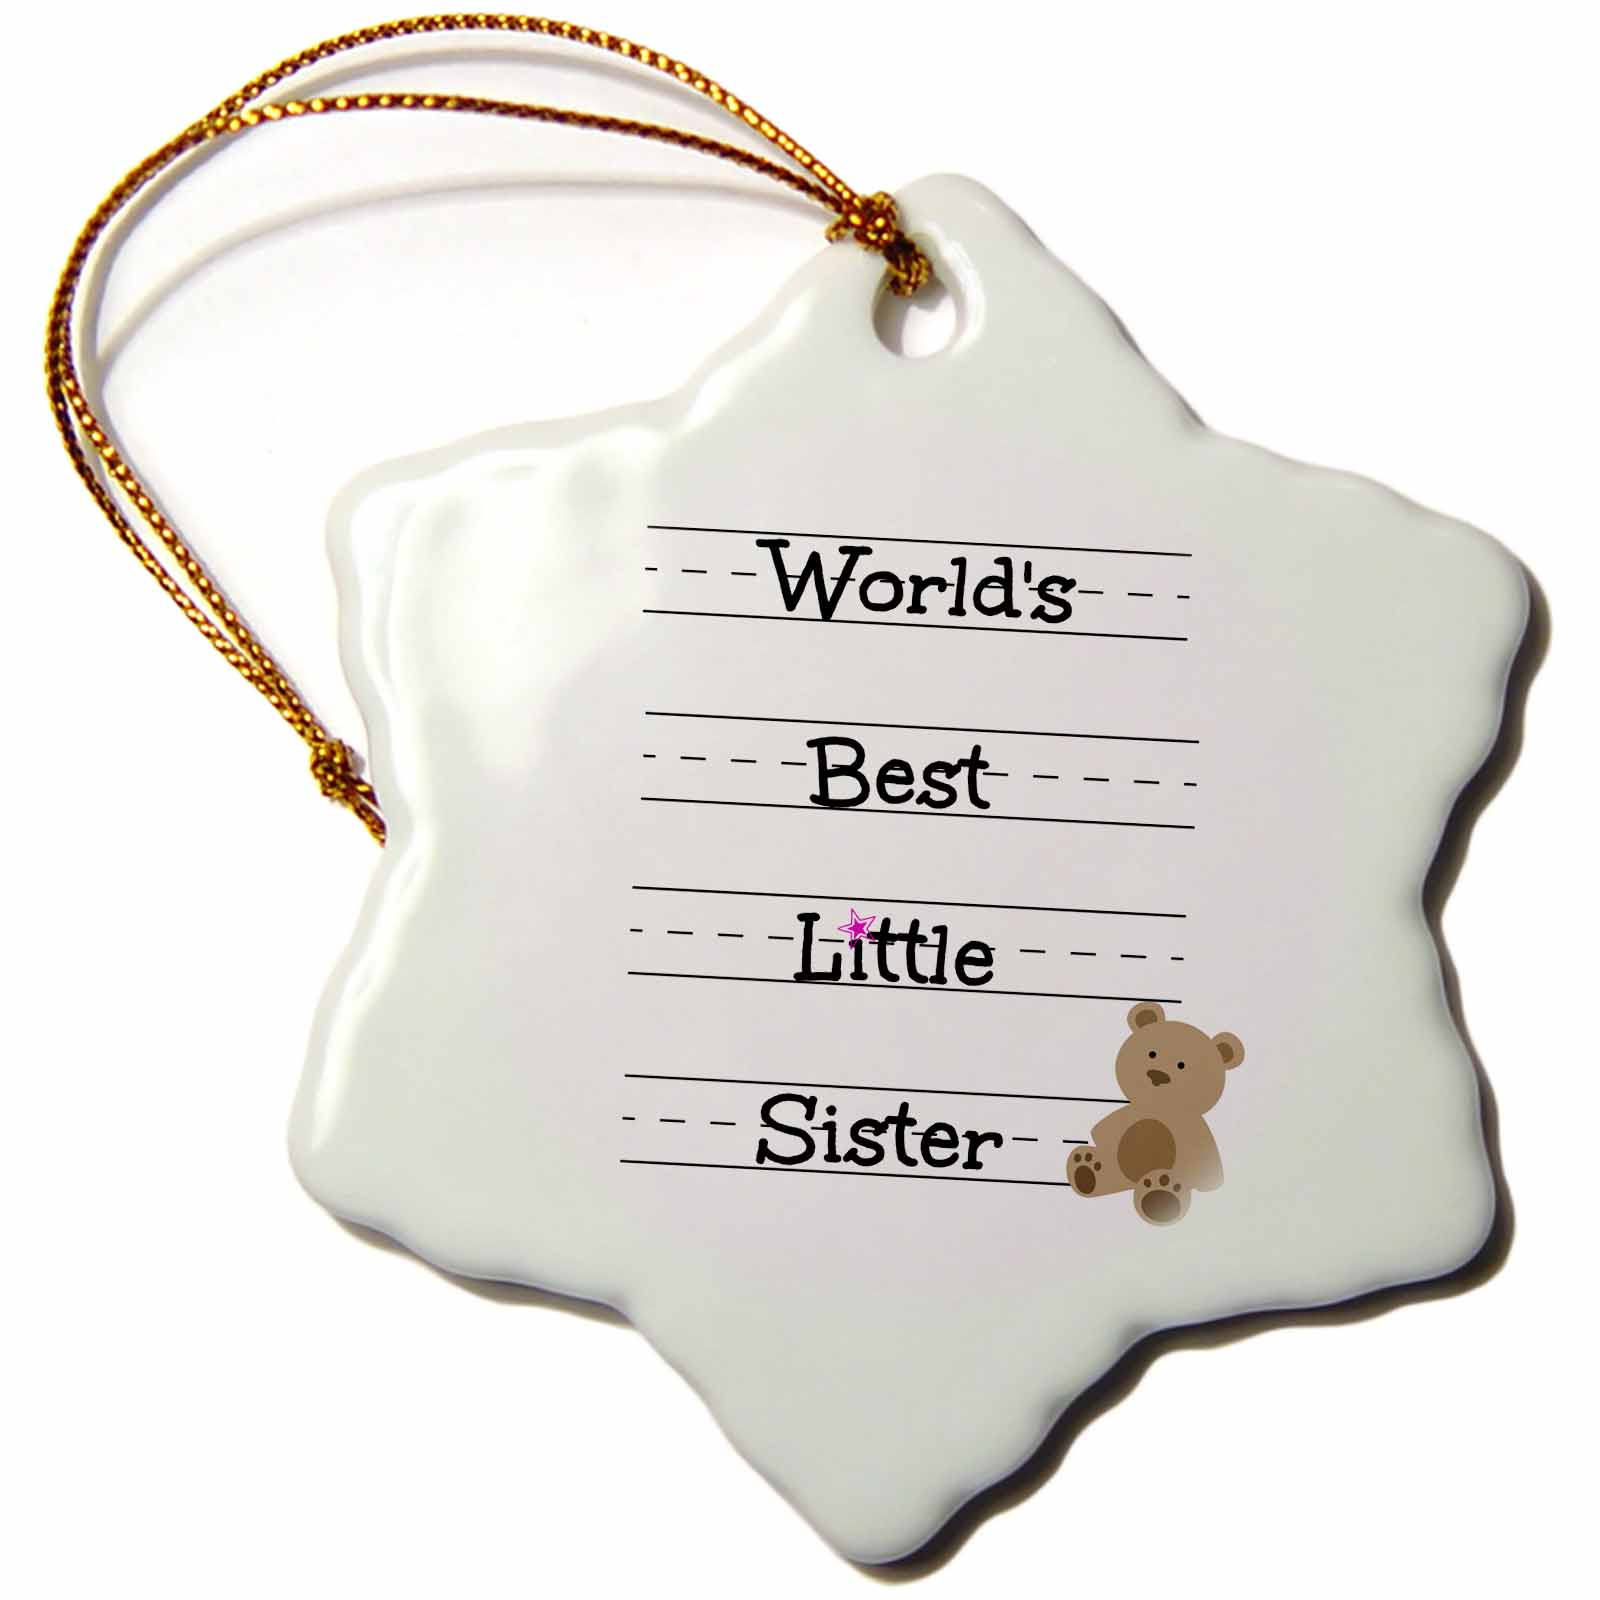 3dRose Worlds best little sister, Snowflake Ornament, Porcelain, 3-inch